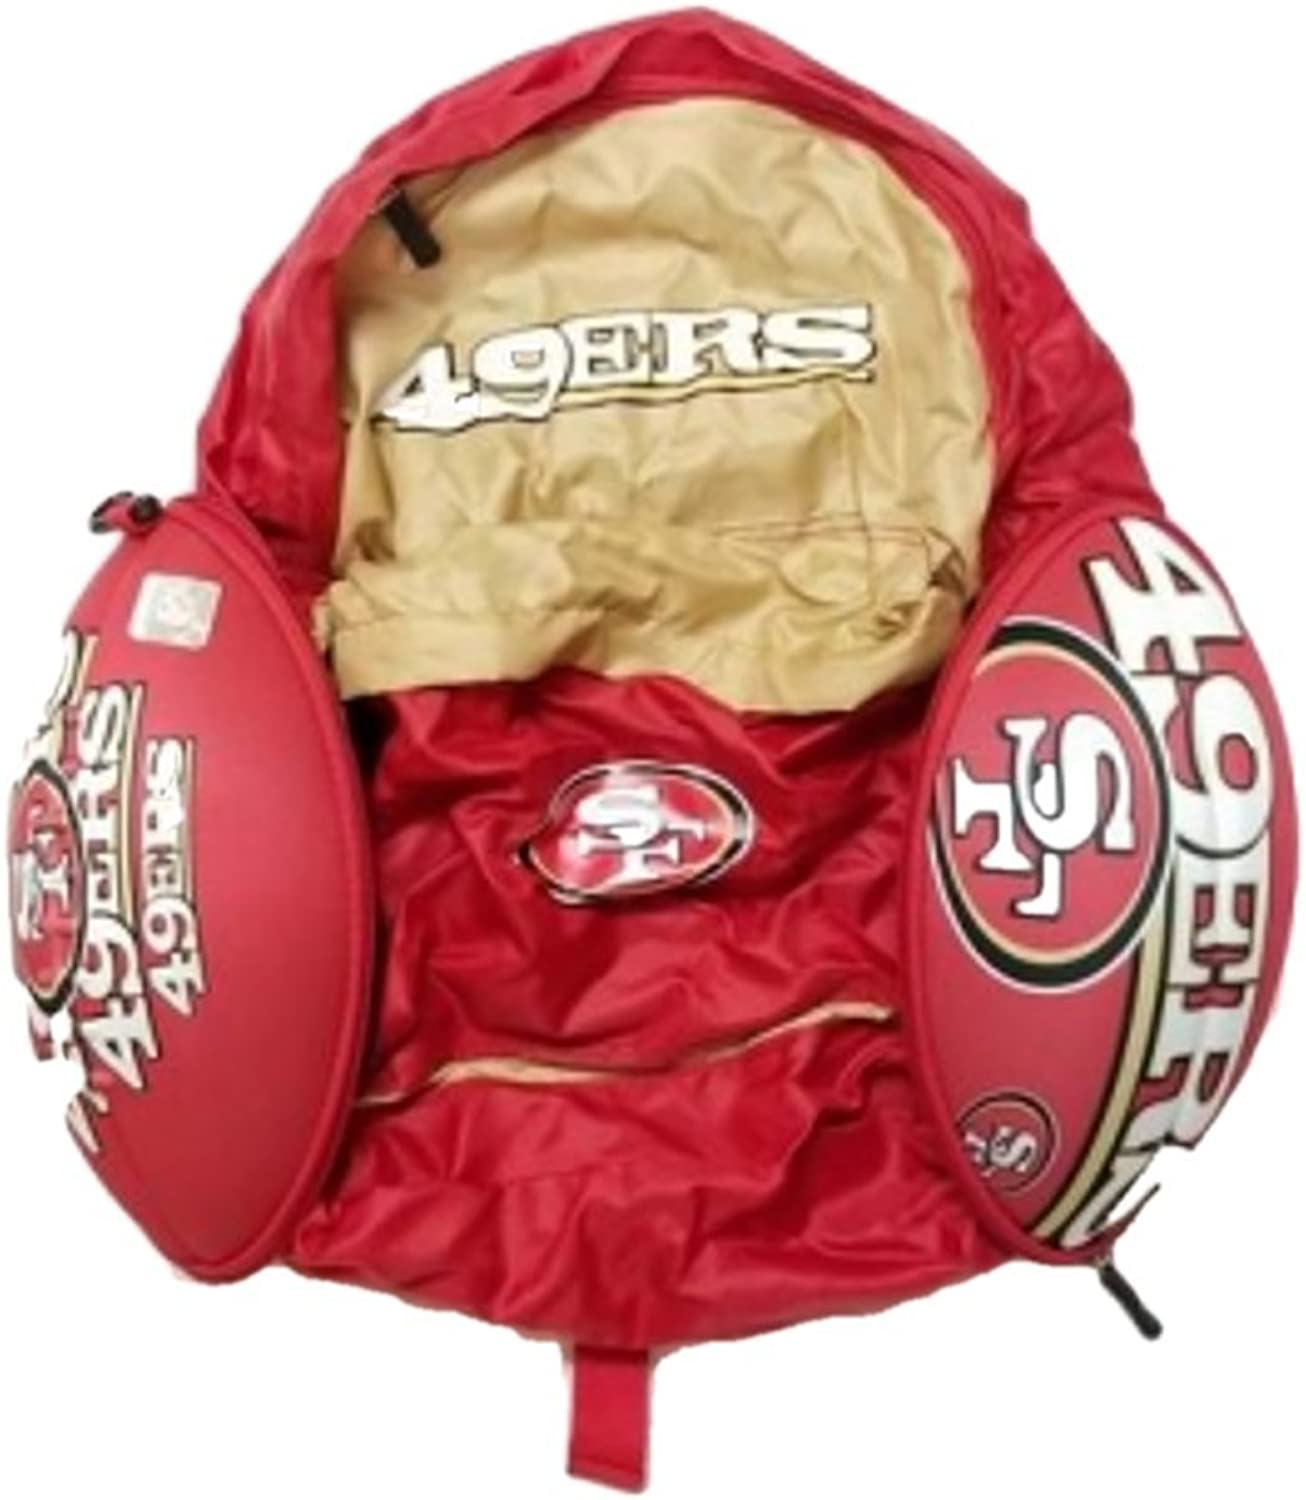 Congreenible Backpack That Zips into a Football